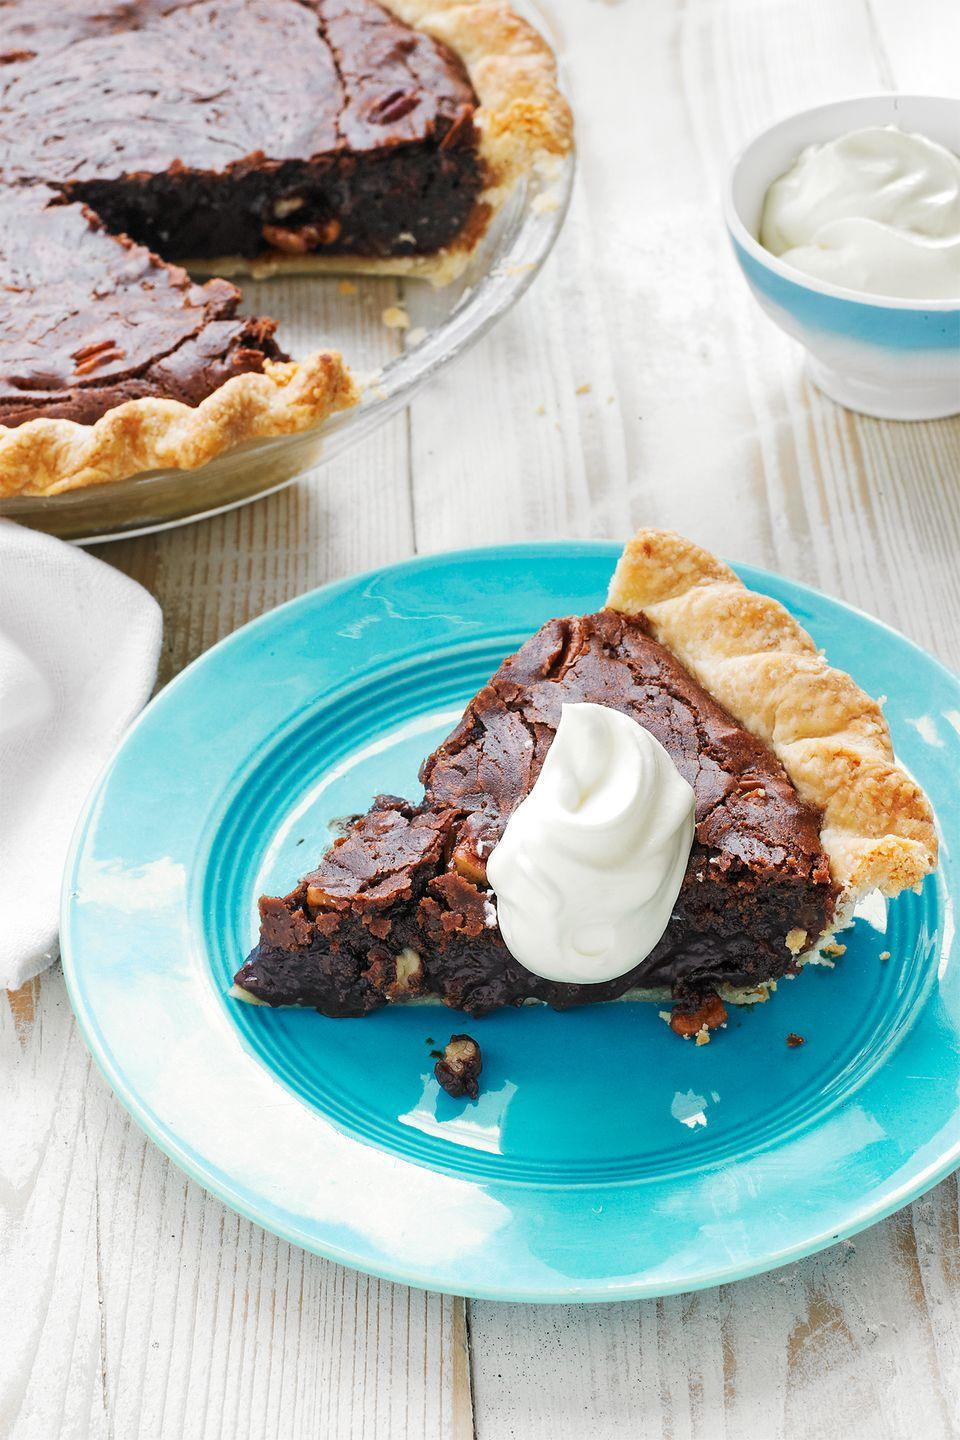 "<p>Named after North Carolina's dark and dense pine forests, this nutty, chocolate <a href=""https://www.countryliving.com/food-drinks/g1368/thanksgiving-pies/"" rel=""nofollow noopener"" target=""_blank"" data-ylk=""slk:Thanksgiving pie"" class=""link rapid-noclick-resp"">Thanksgiving pie</a> gets its flavor from pecans, chocolate chips, brown sugar, and coffee beans. </p><p><strong><a href=""https://www.countryliving.com/food-drinks/recipes/a31428/tar-heel-pie-recipe-wdy1112/"" rel=""nofollow noopener"" target=""_blank"" data-ylk=""slk:Get the recipe"" class=""link rapid-noclick-resp"">Get the recipe</a>.</strong></p><p><a class=""link rapid-noclick-resp"" href=""https://www.amazon.com/Camp-Chef-True-Seasoned-CIPIE10/dp/B000OXAQ6G?tag=syn-yahoo-20&ascsubtag=%5Bartid%7C10050.g.957%5Bsrc%7Cyahoo-us"" rel=""nofollow noopener"" target=""_blank"" data-ylk=""slk:SHOP PIE PANS"">SHOP PIE PANS</a> </p>"